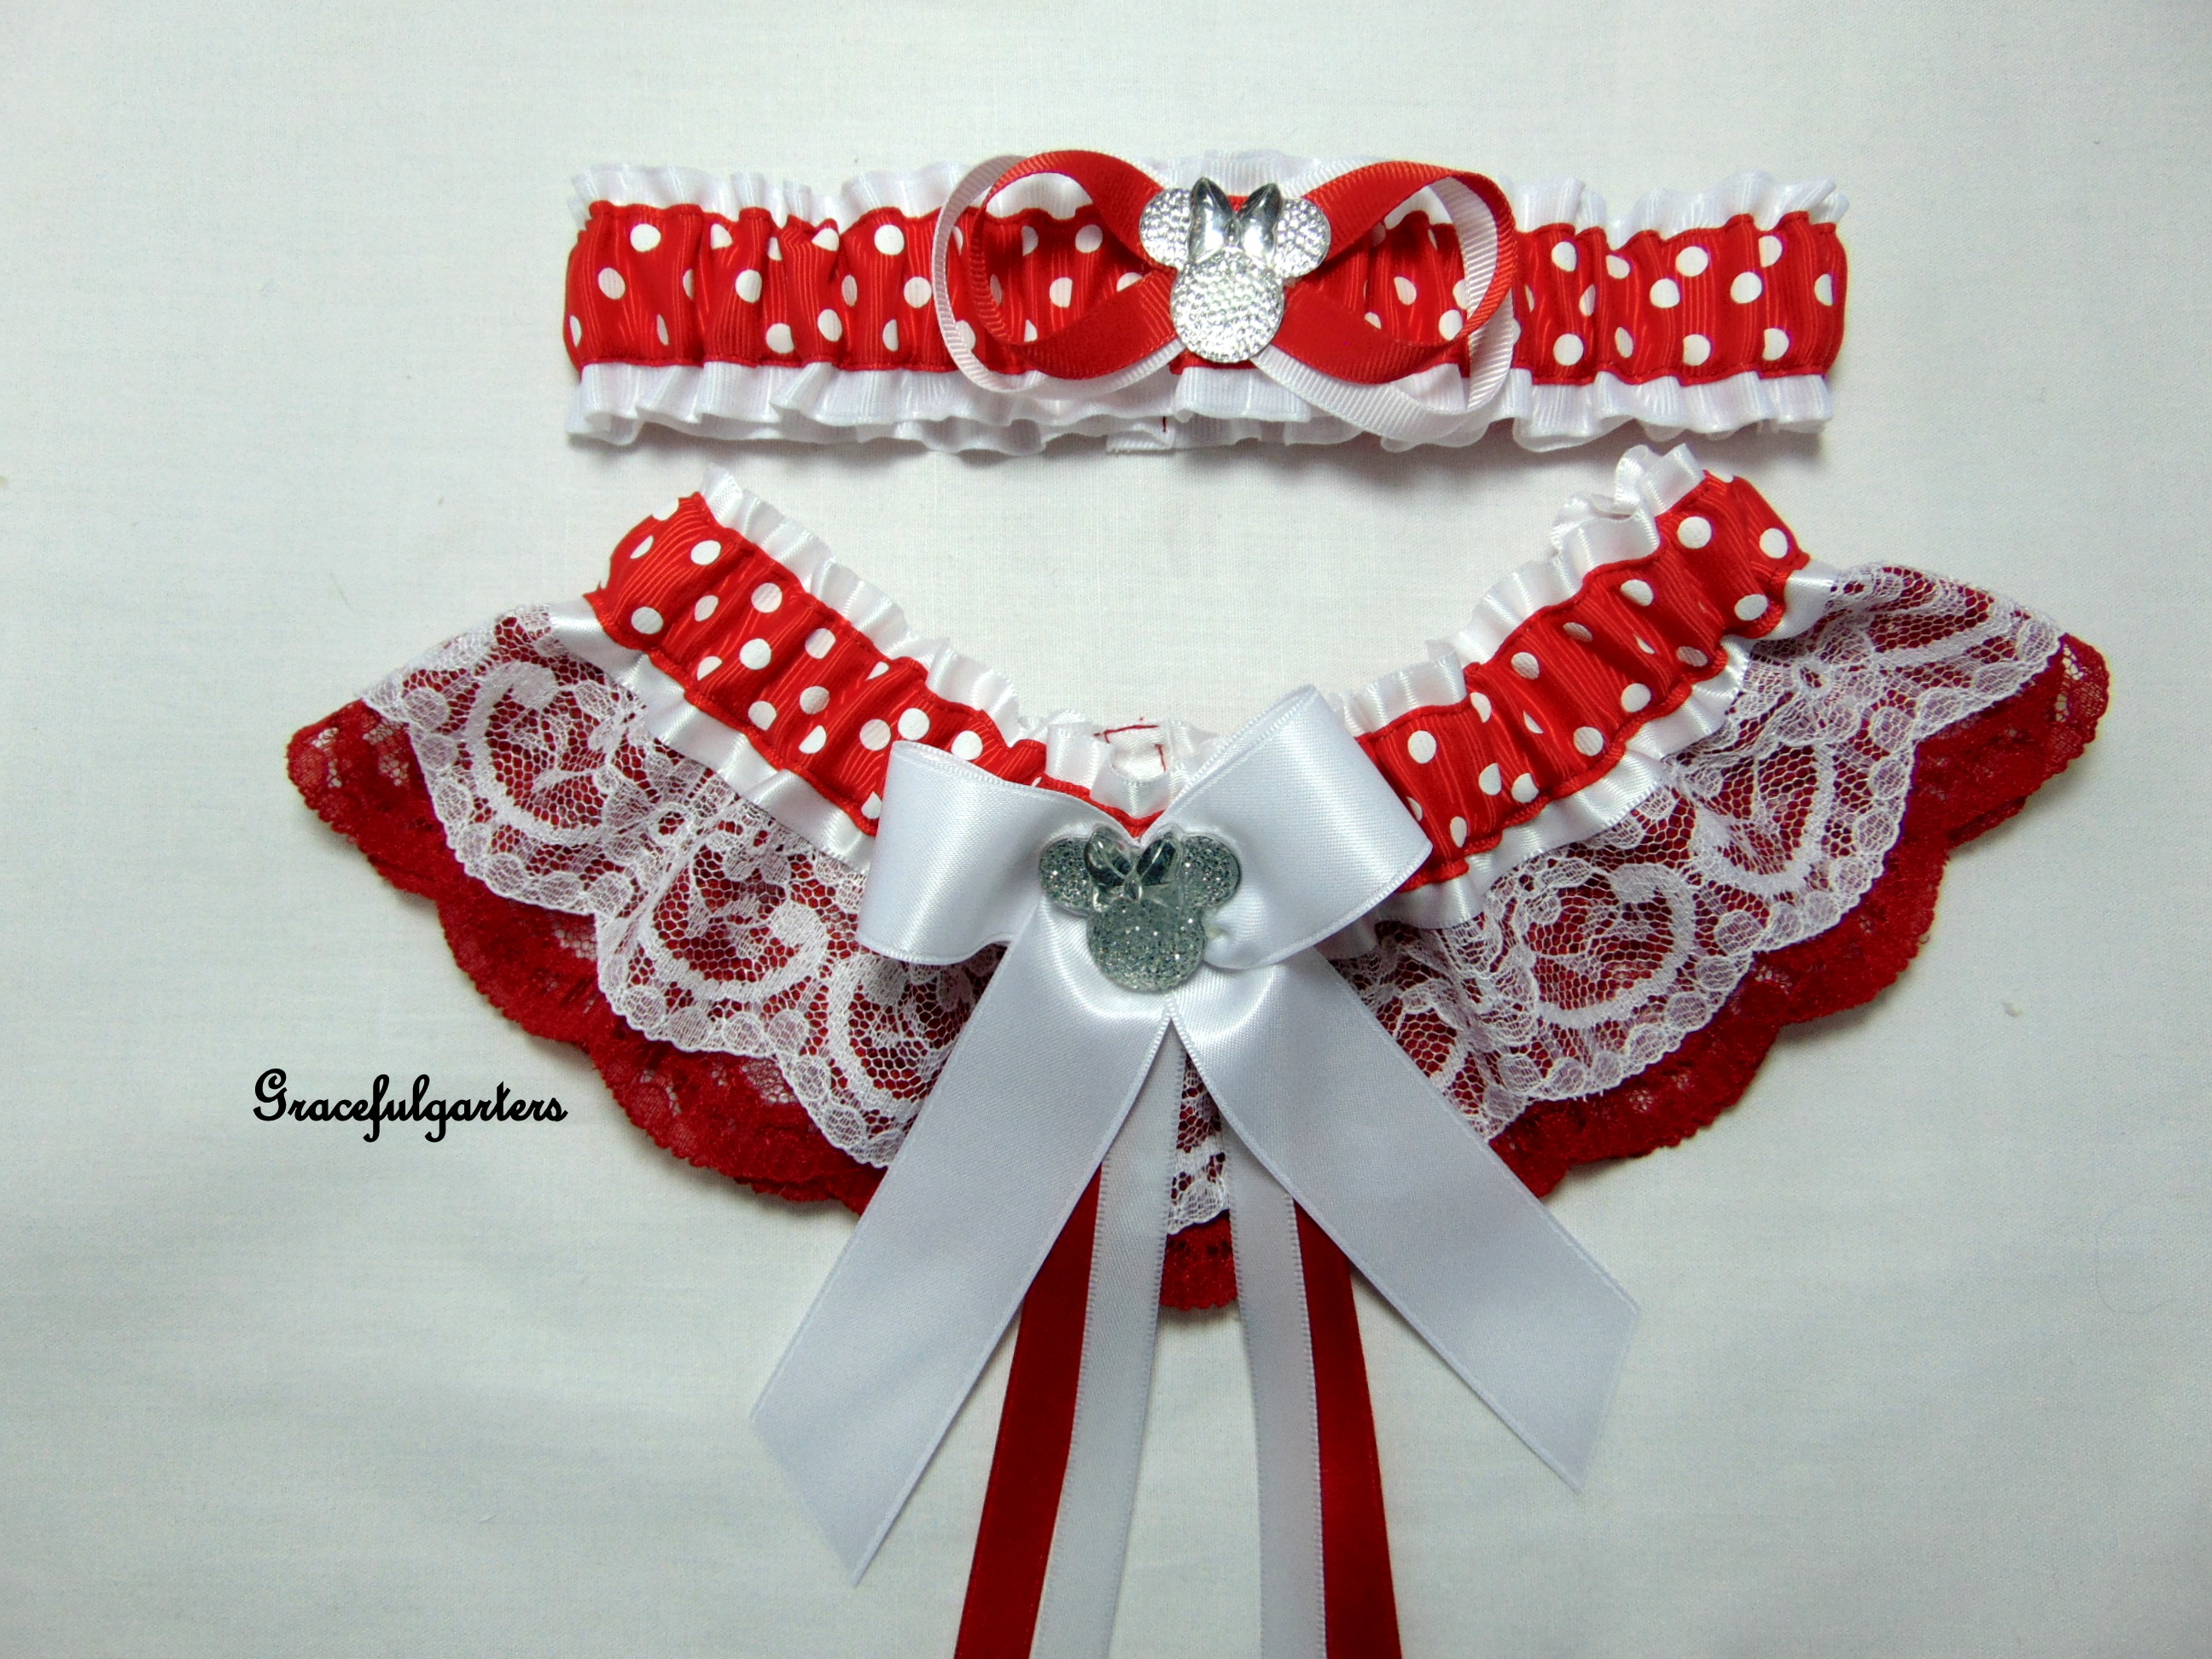 Disney Minnie Mouse Polka Dot Lace Bridal Wedding Garter Set